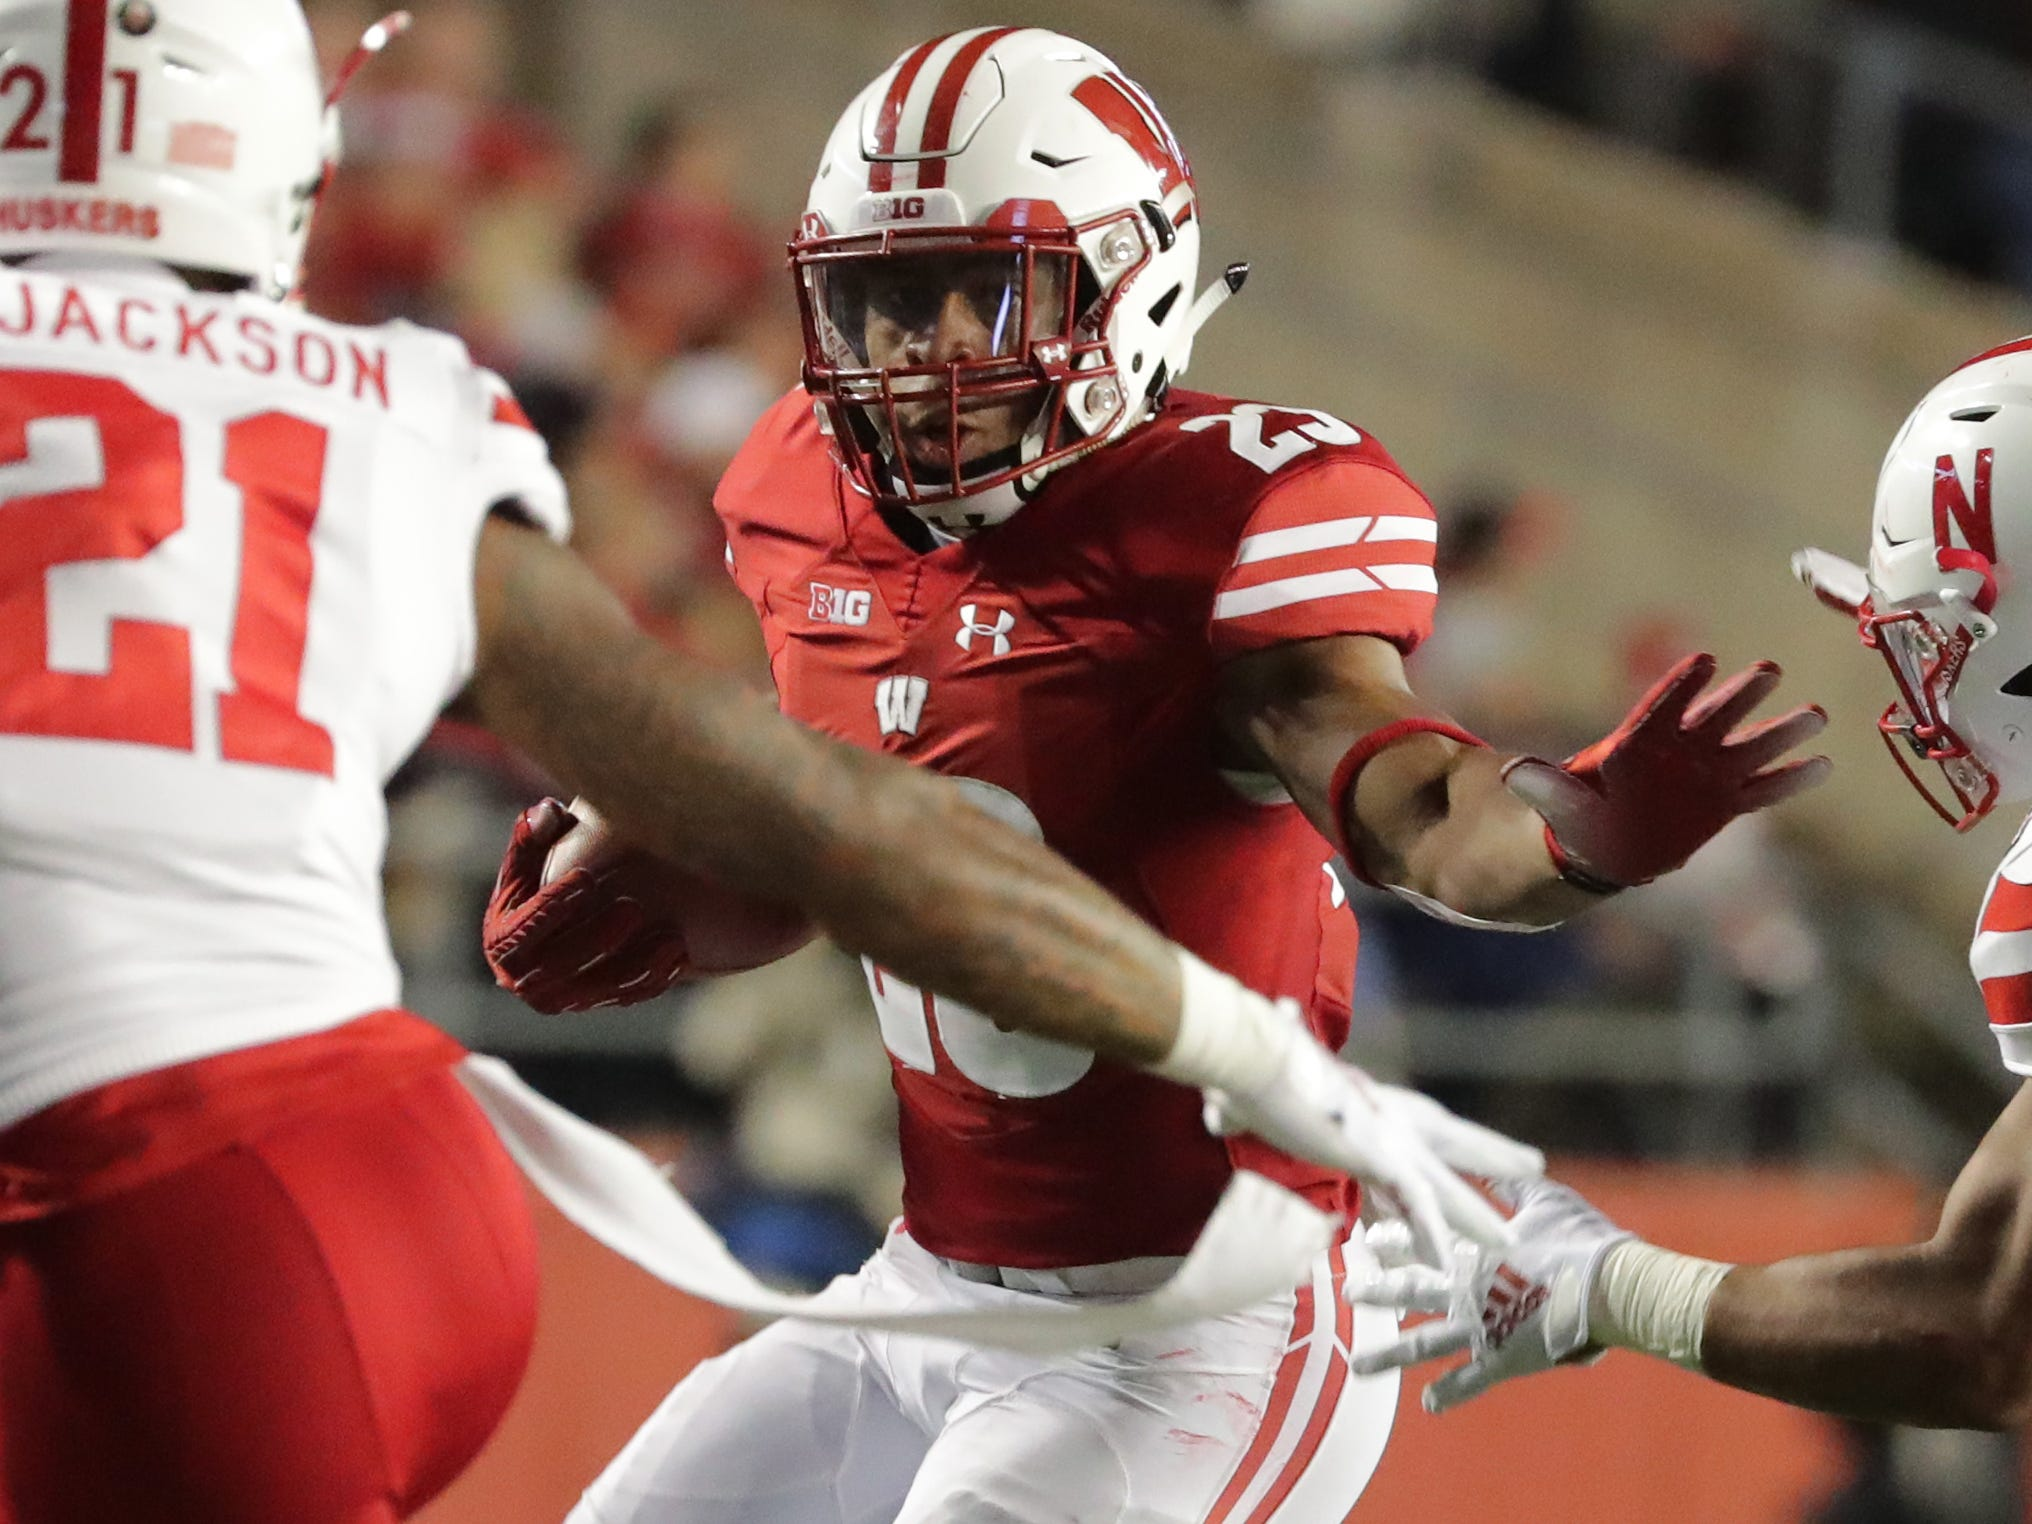 Wisconsin running back Jonathan Taylor is pursued by Nebraska defensive back Lamar Jackson and linebacker Dedrick Young II during the third quarter on Saturday night.